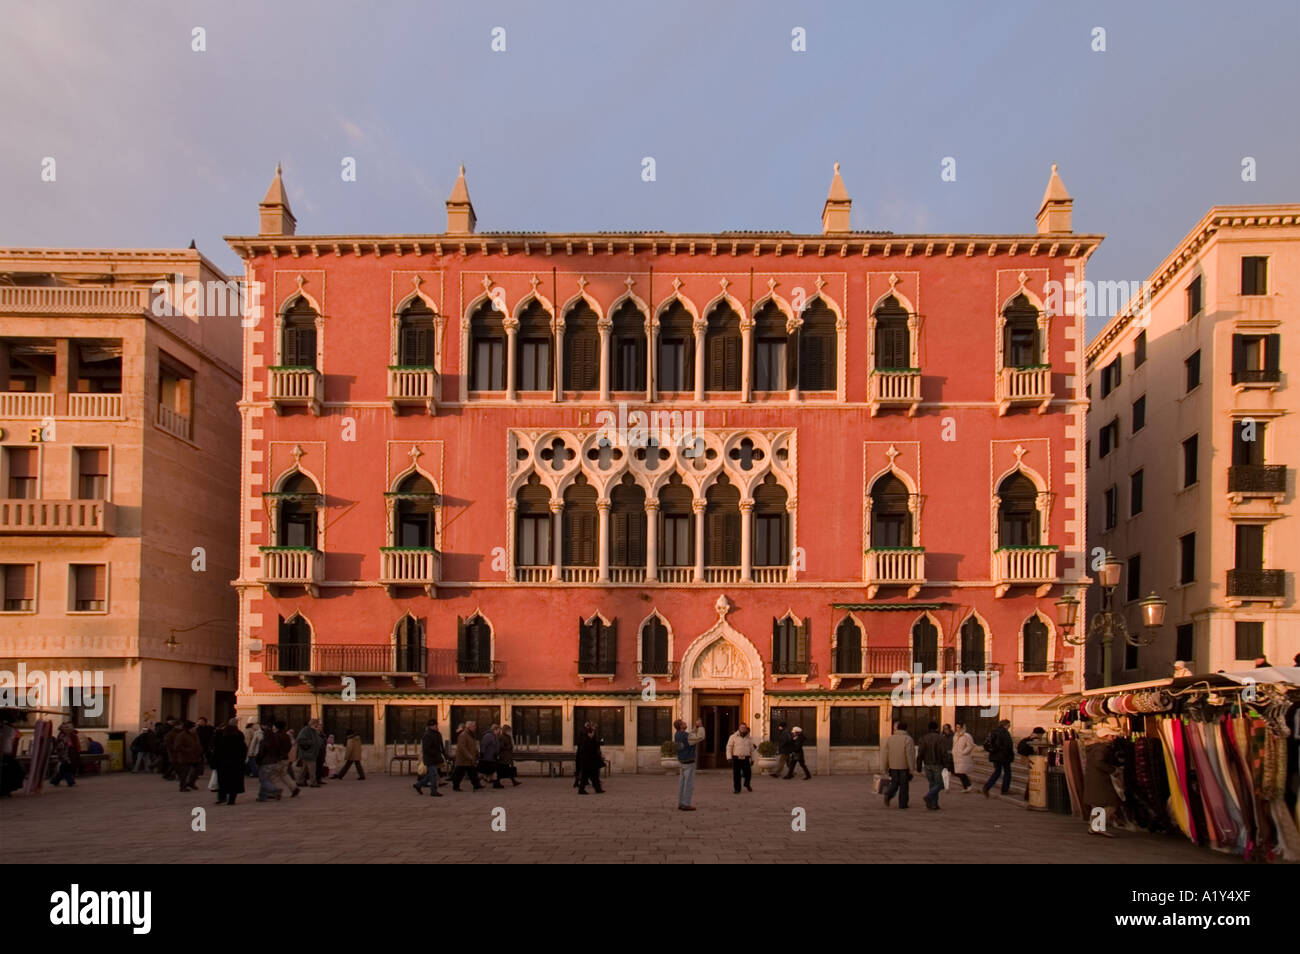 Hotel Danieli Venice Italy Stock Photo 5916334 Alamy